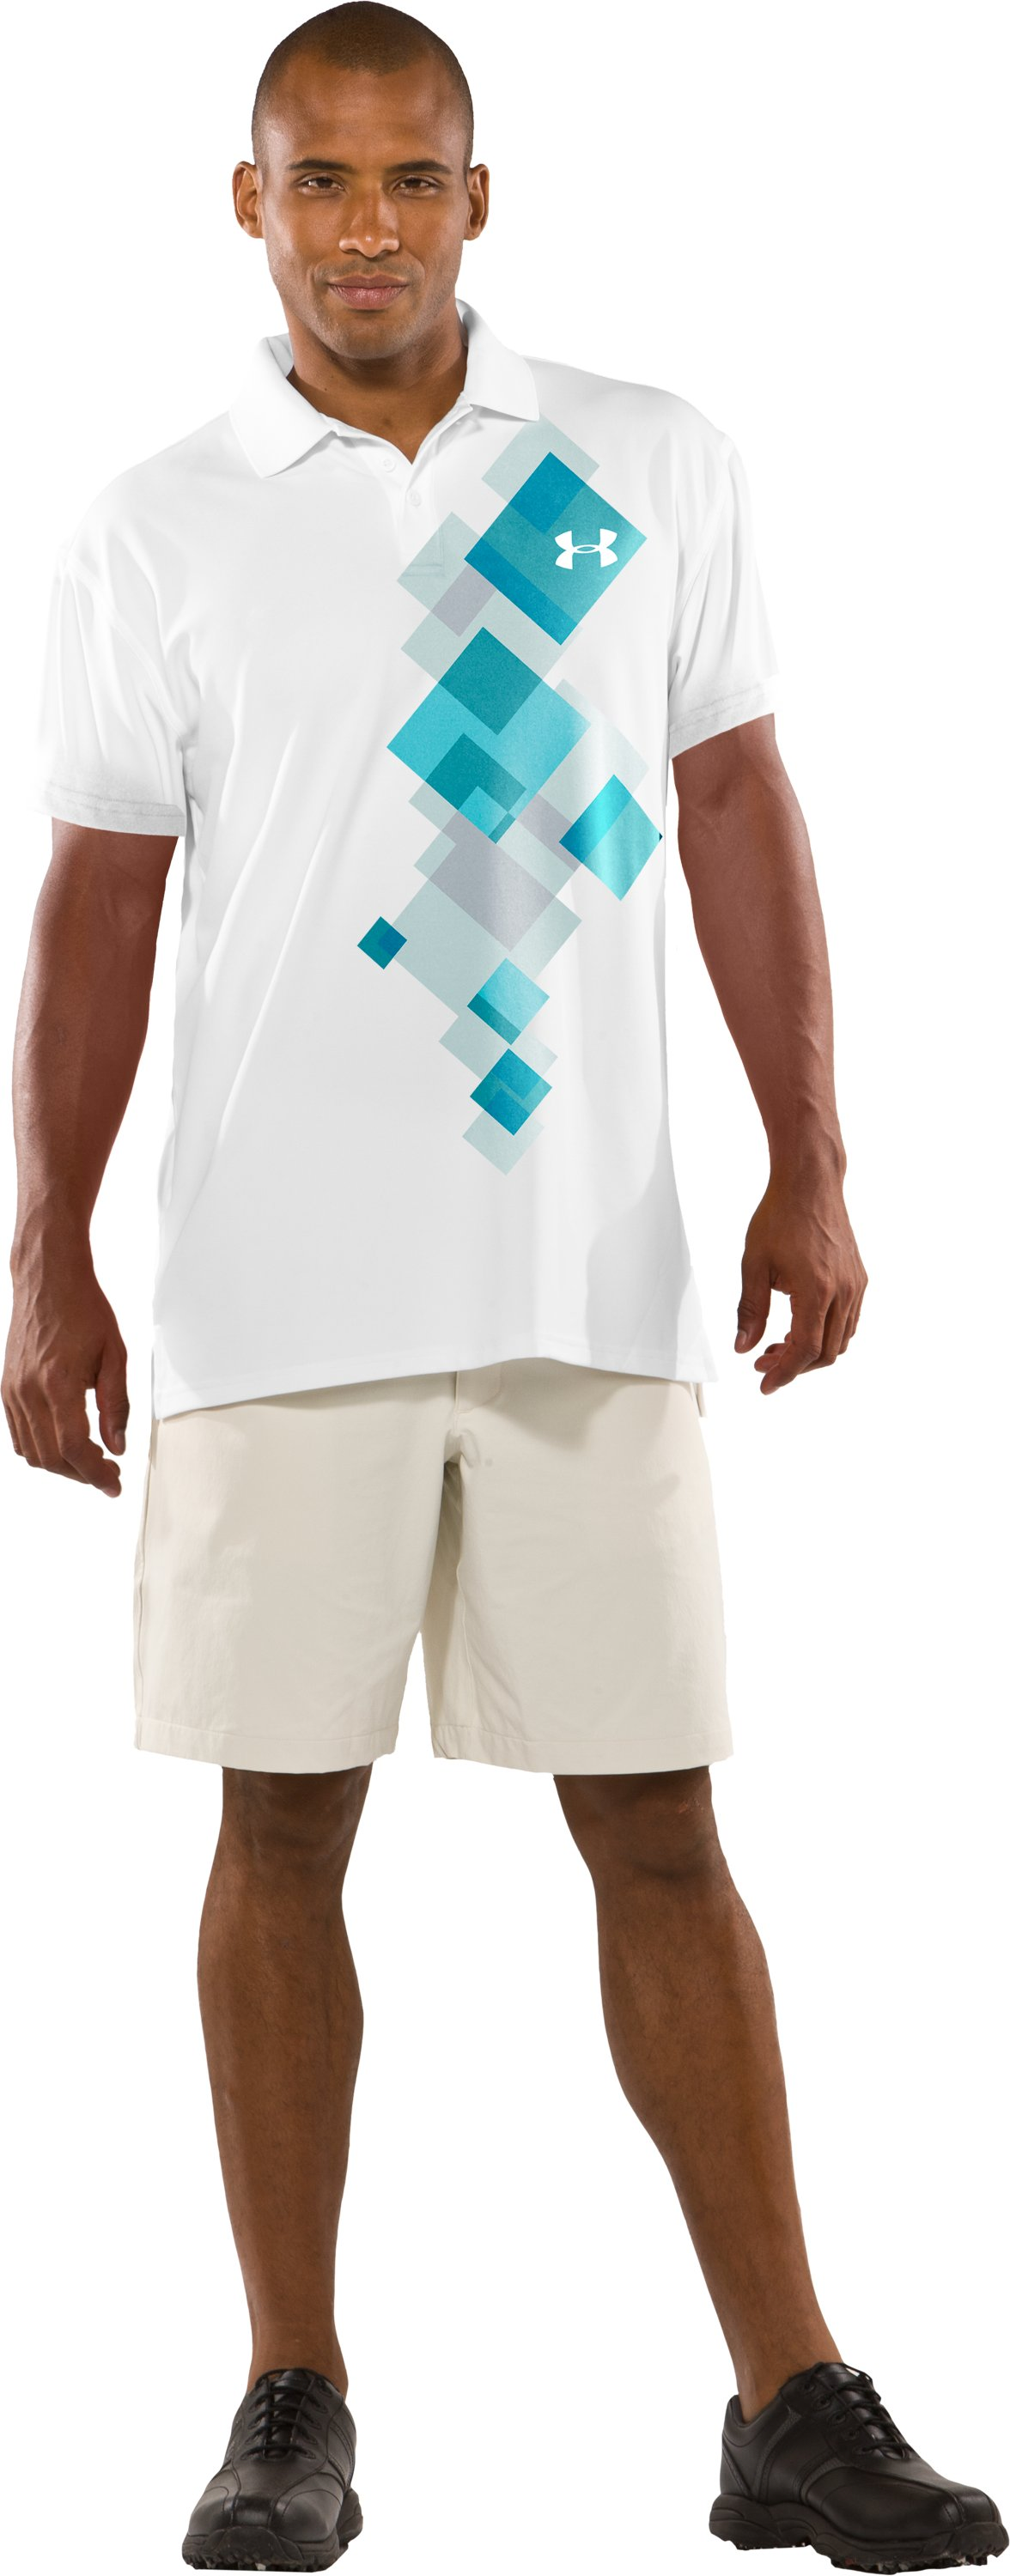 Men's Performance Graphic Polo, White, Front